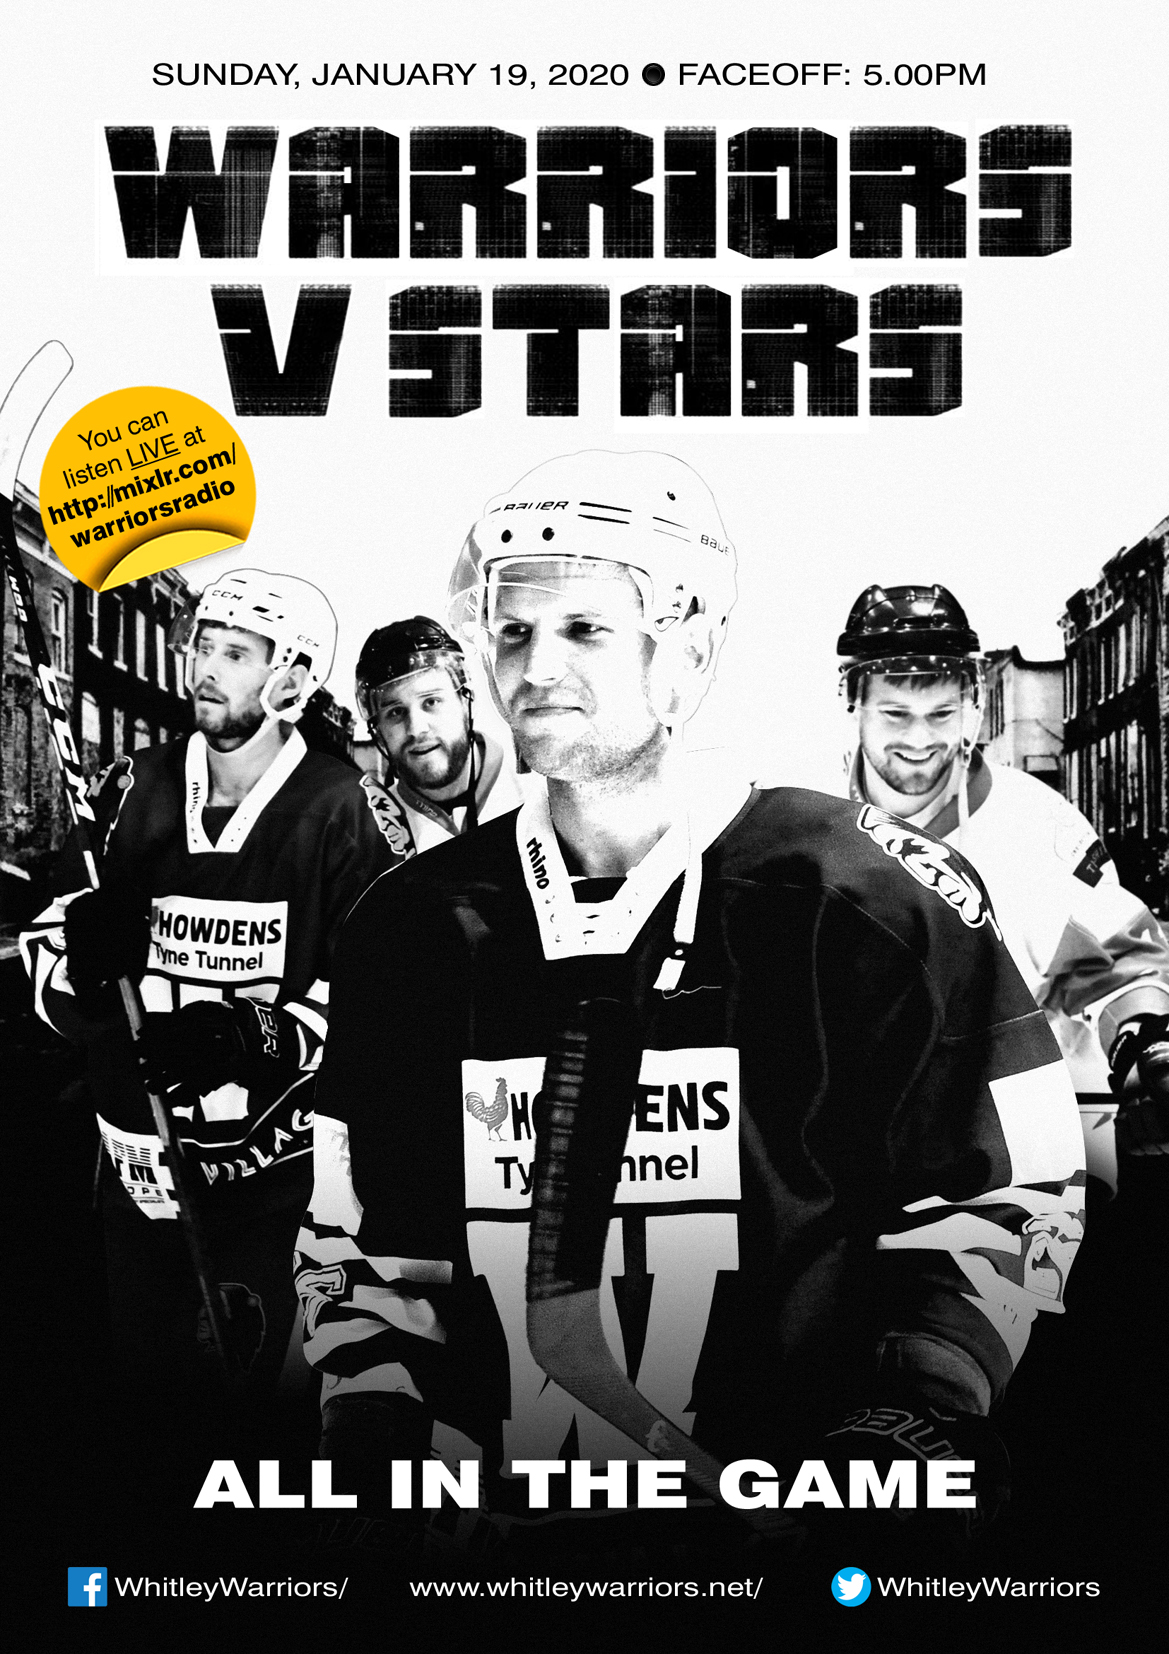 Whitley Warriors vs Billingham Stars @ Whitley Bay Ice Rink, Sunday 19 January 2020, face off 5pm